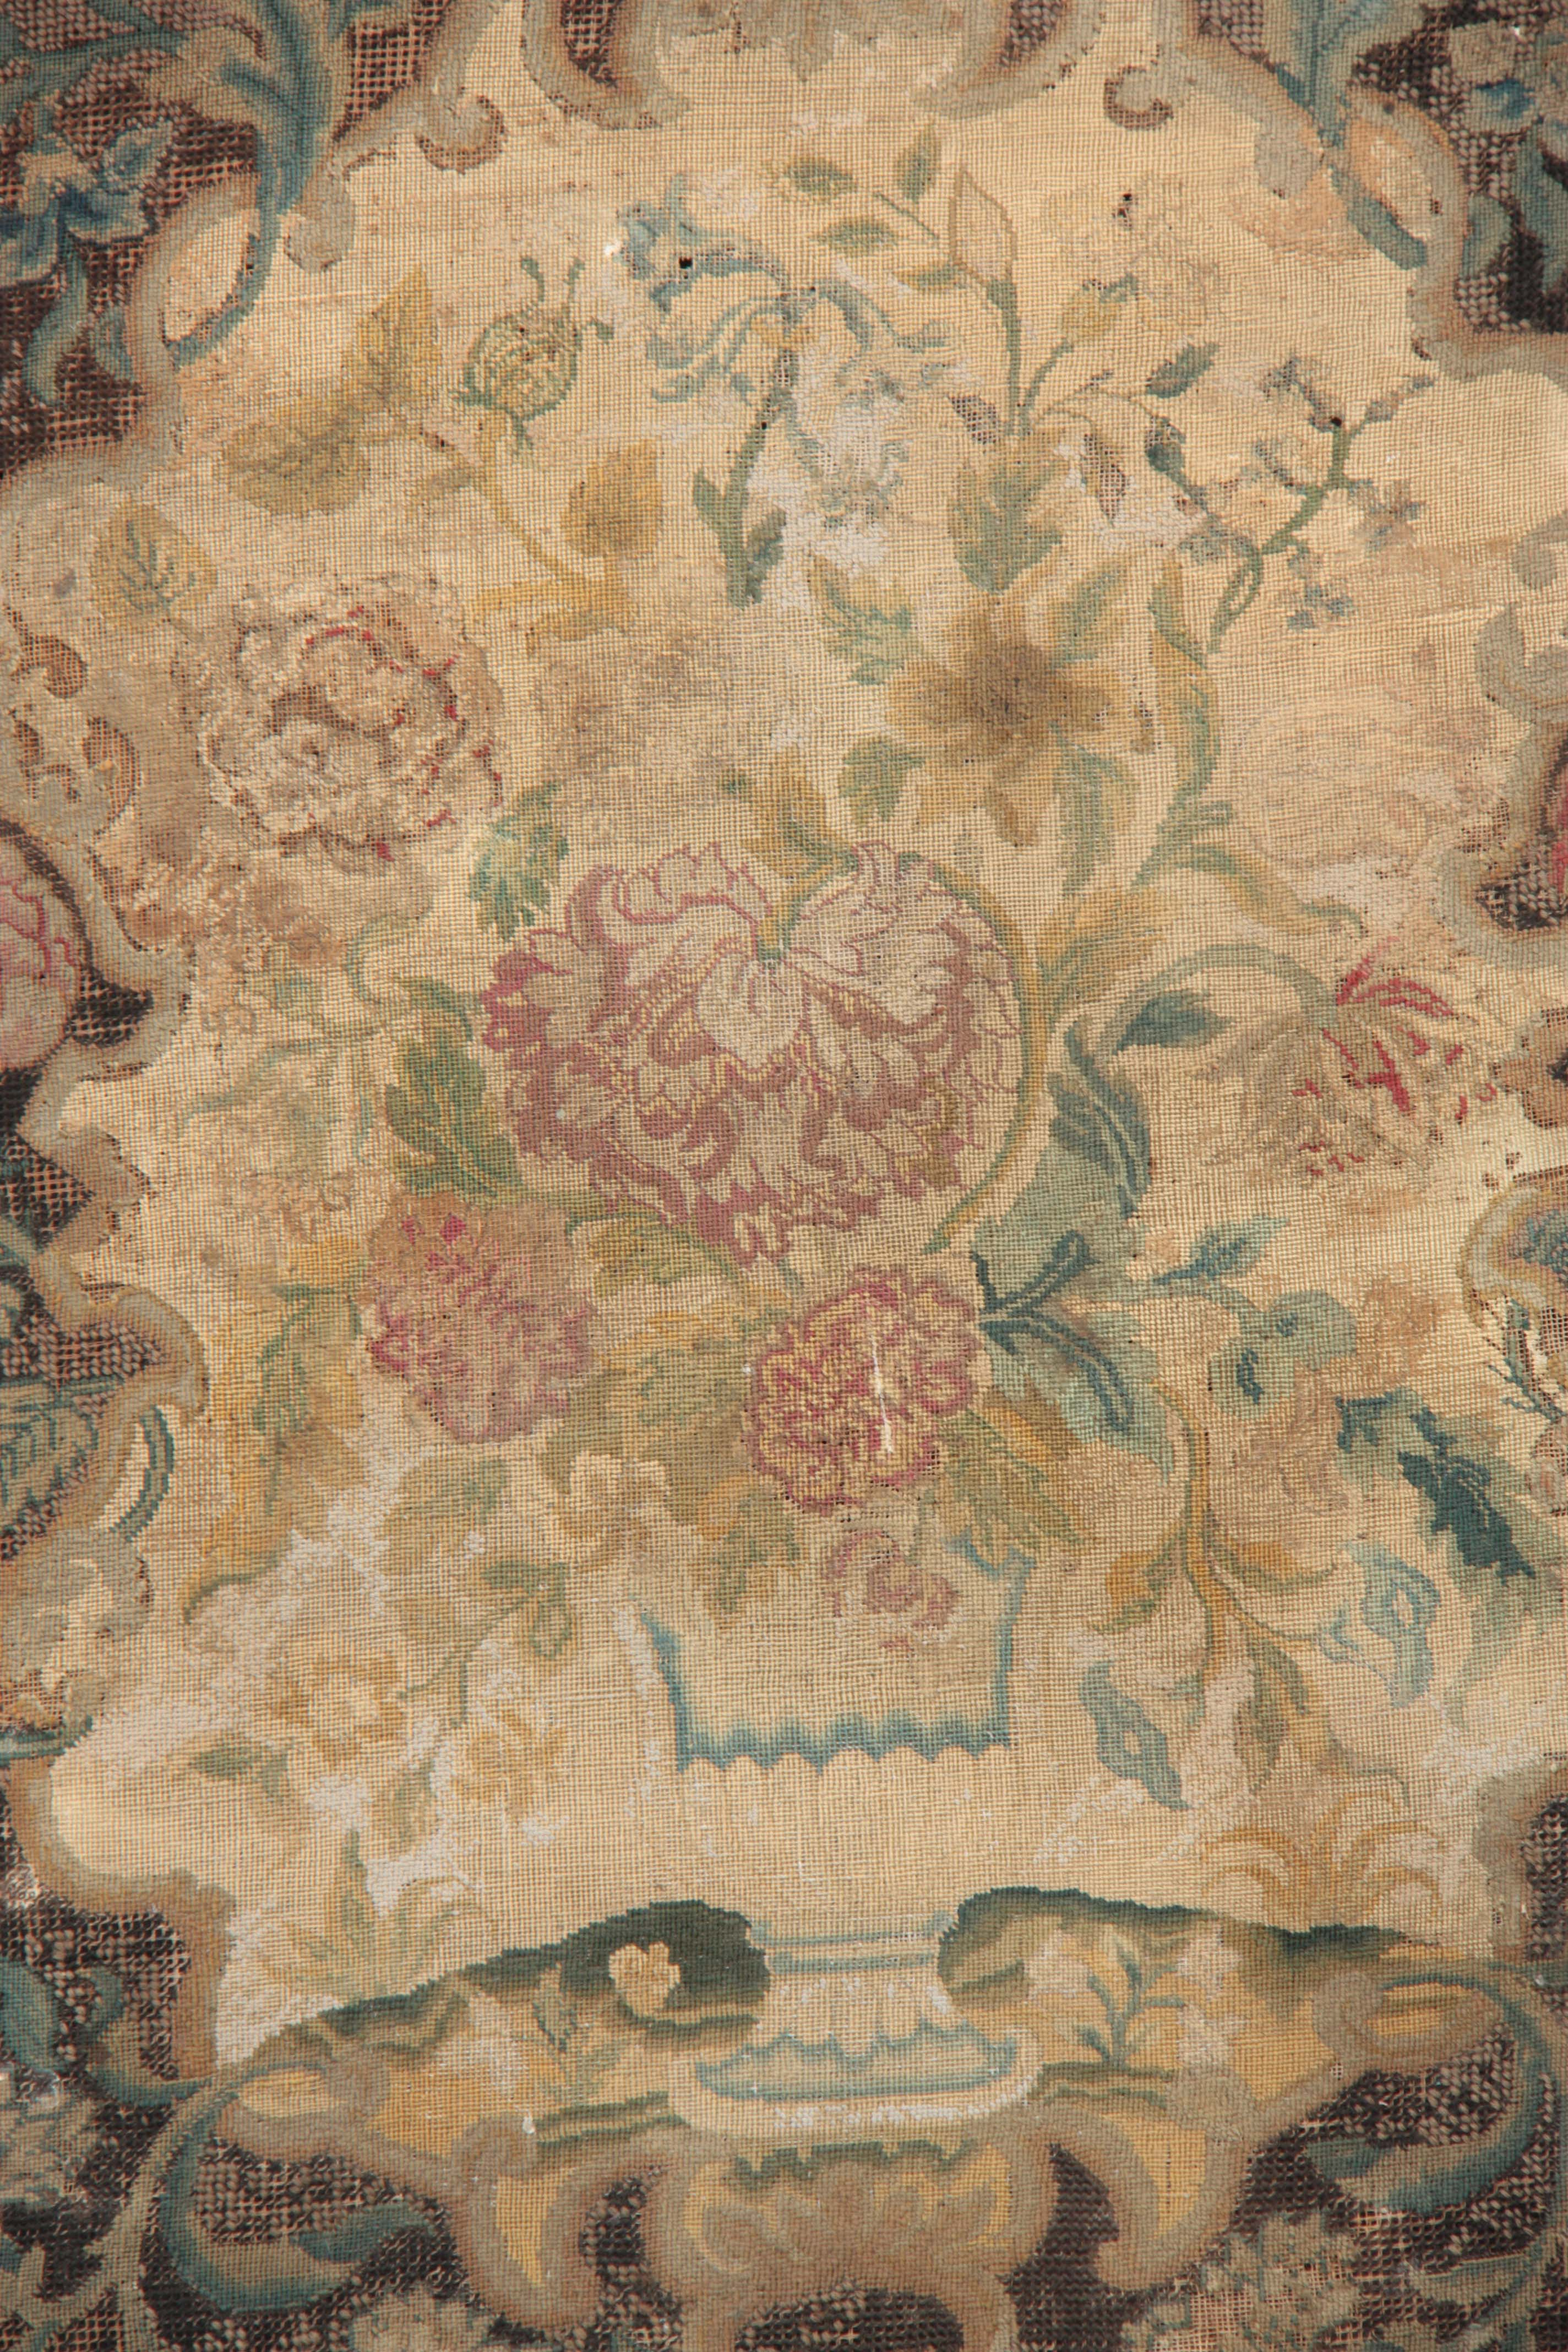 Lot 645 - AN 18TH CENTURY EMBROIDERED PANEL depicting flowers 82cm high 63cm wide.